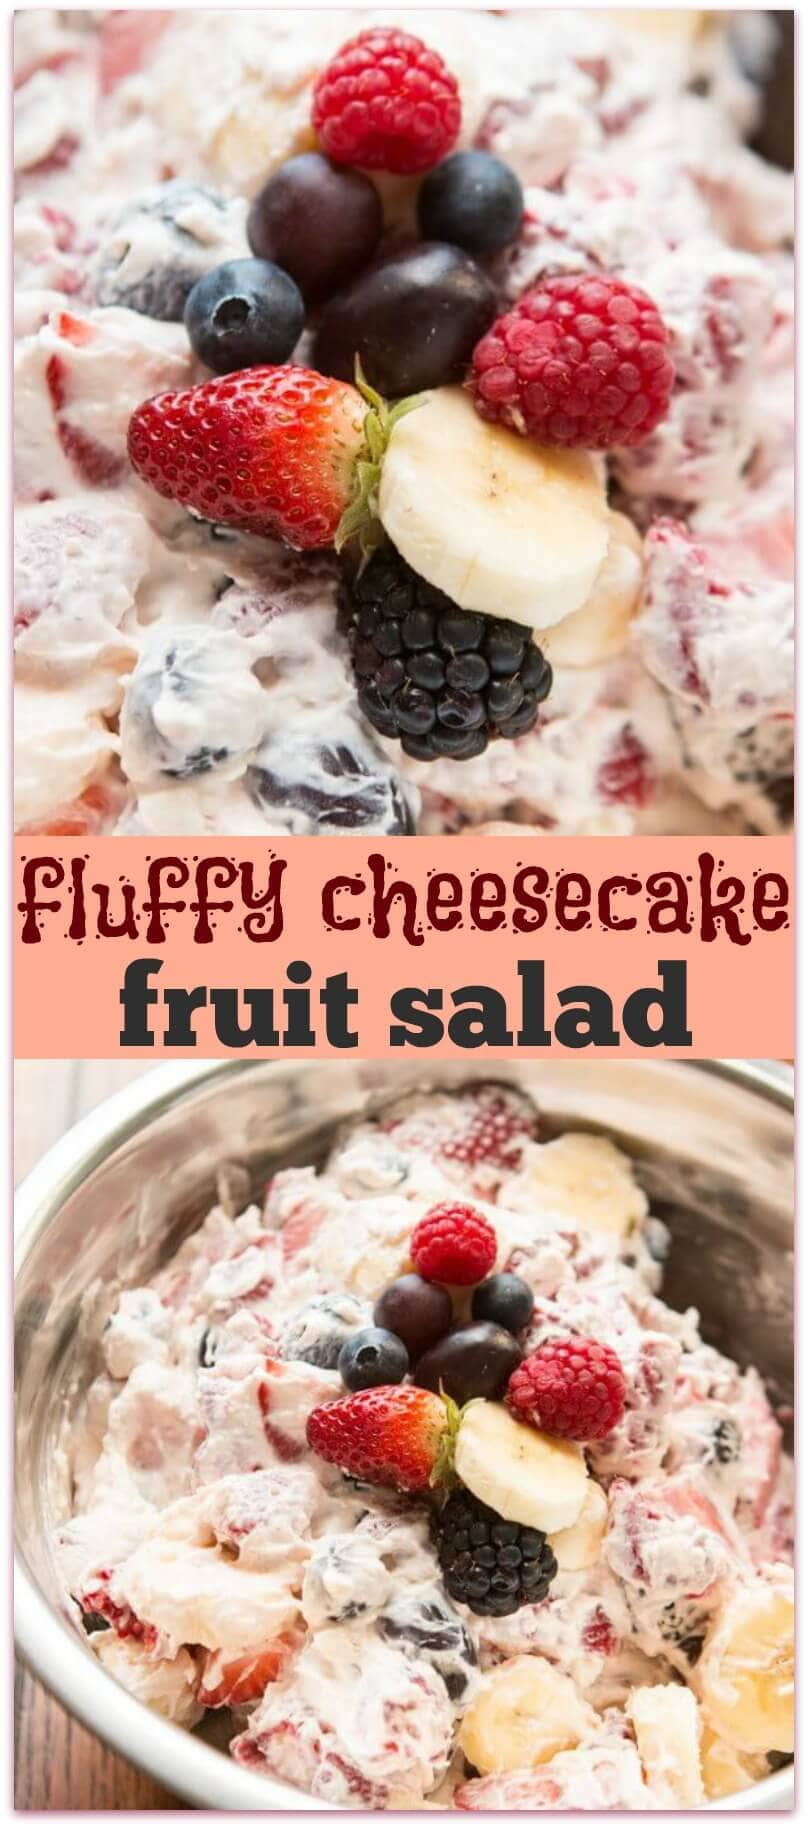 This cheesecake fruit salad is awesome for a side at a potluck or BBQ or even as a dessert! Plus it's so easy it's foolproof!